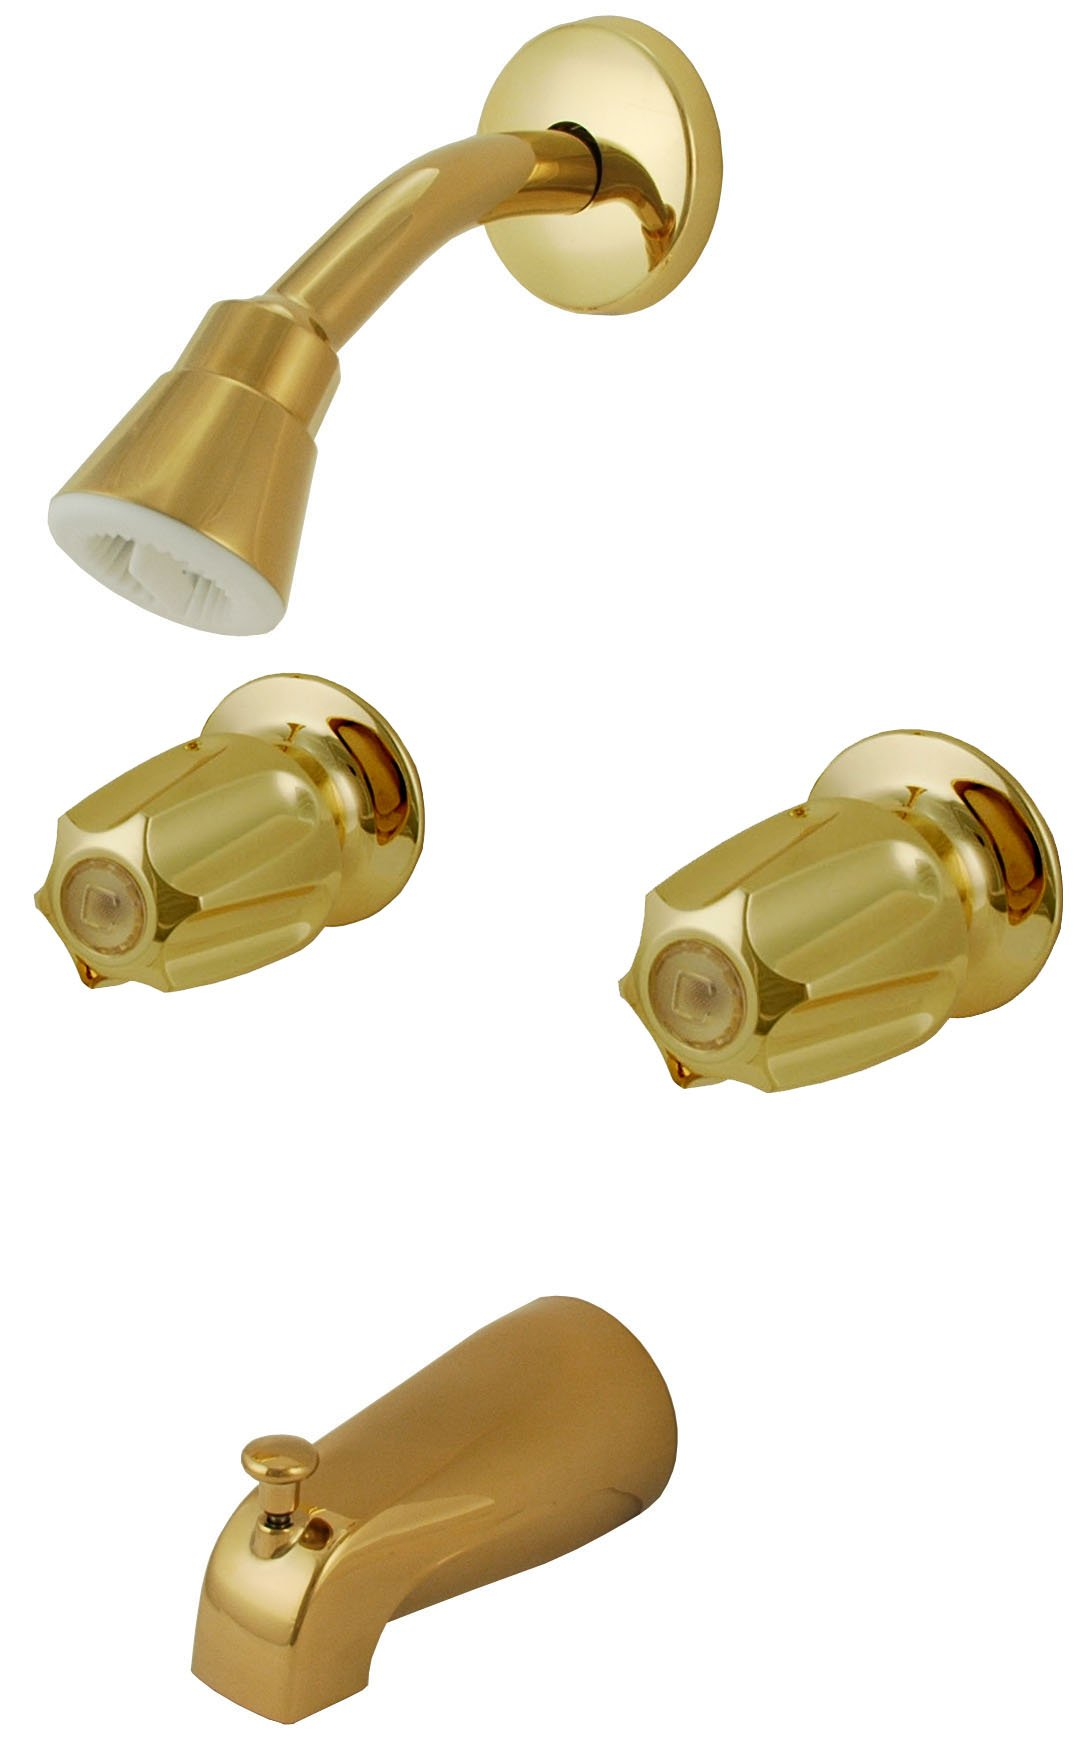 8'' Two-way Tub & Shower Valves, Polish Brass Finish, Compression Stems, Verve Handles - By Plumb USA 34200pvd by PlumbUSA